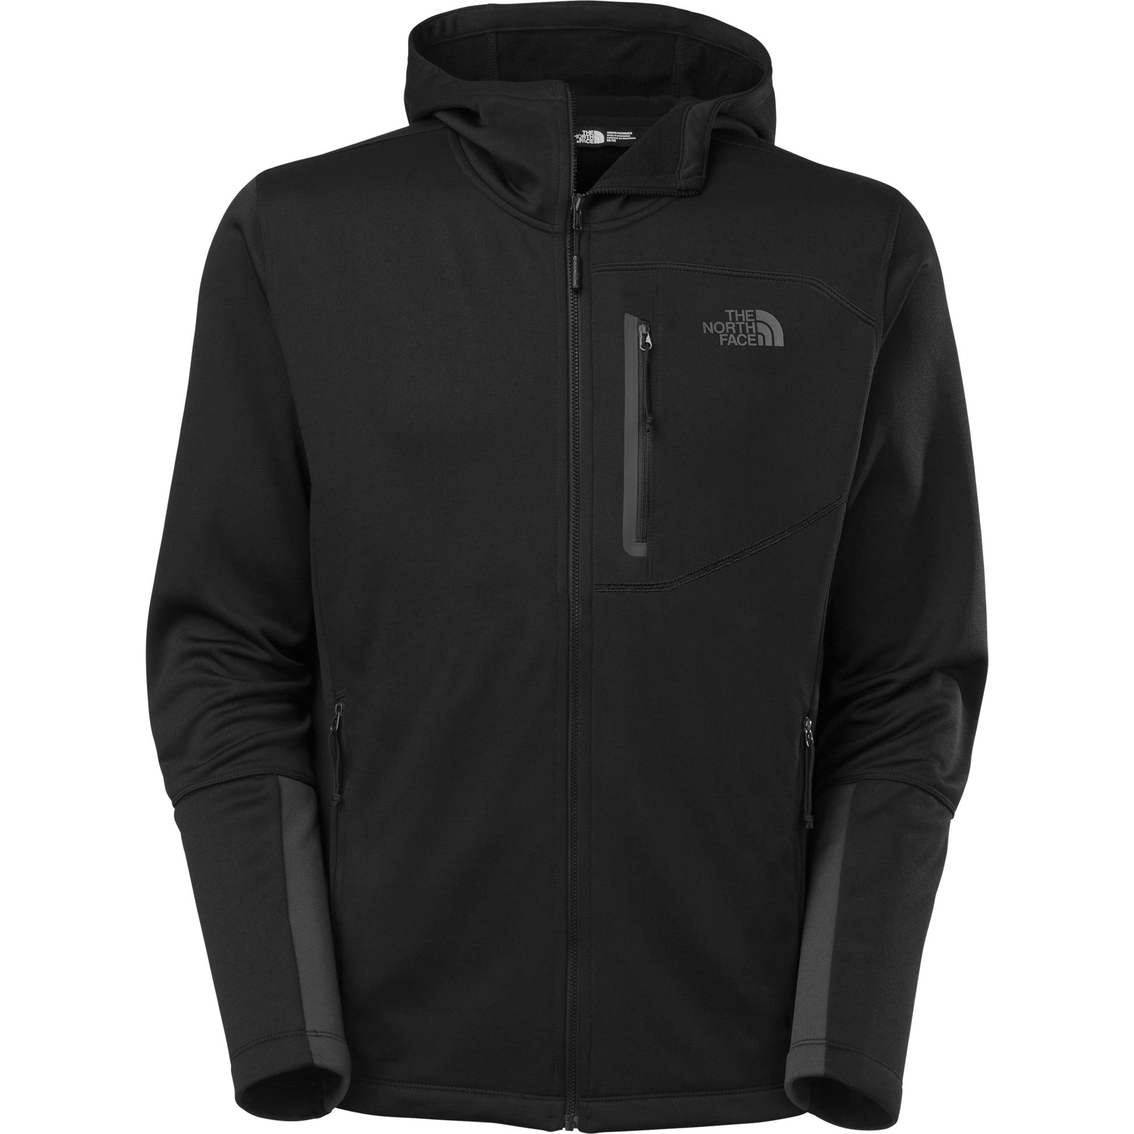 19d7a31e7 The North Face Canyonlands Full Zip Hoodie | Hoodies & Jackets ...